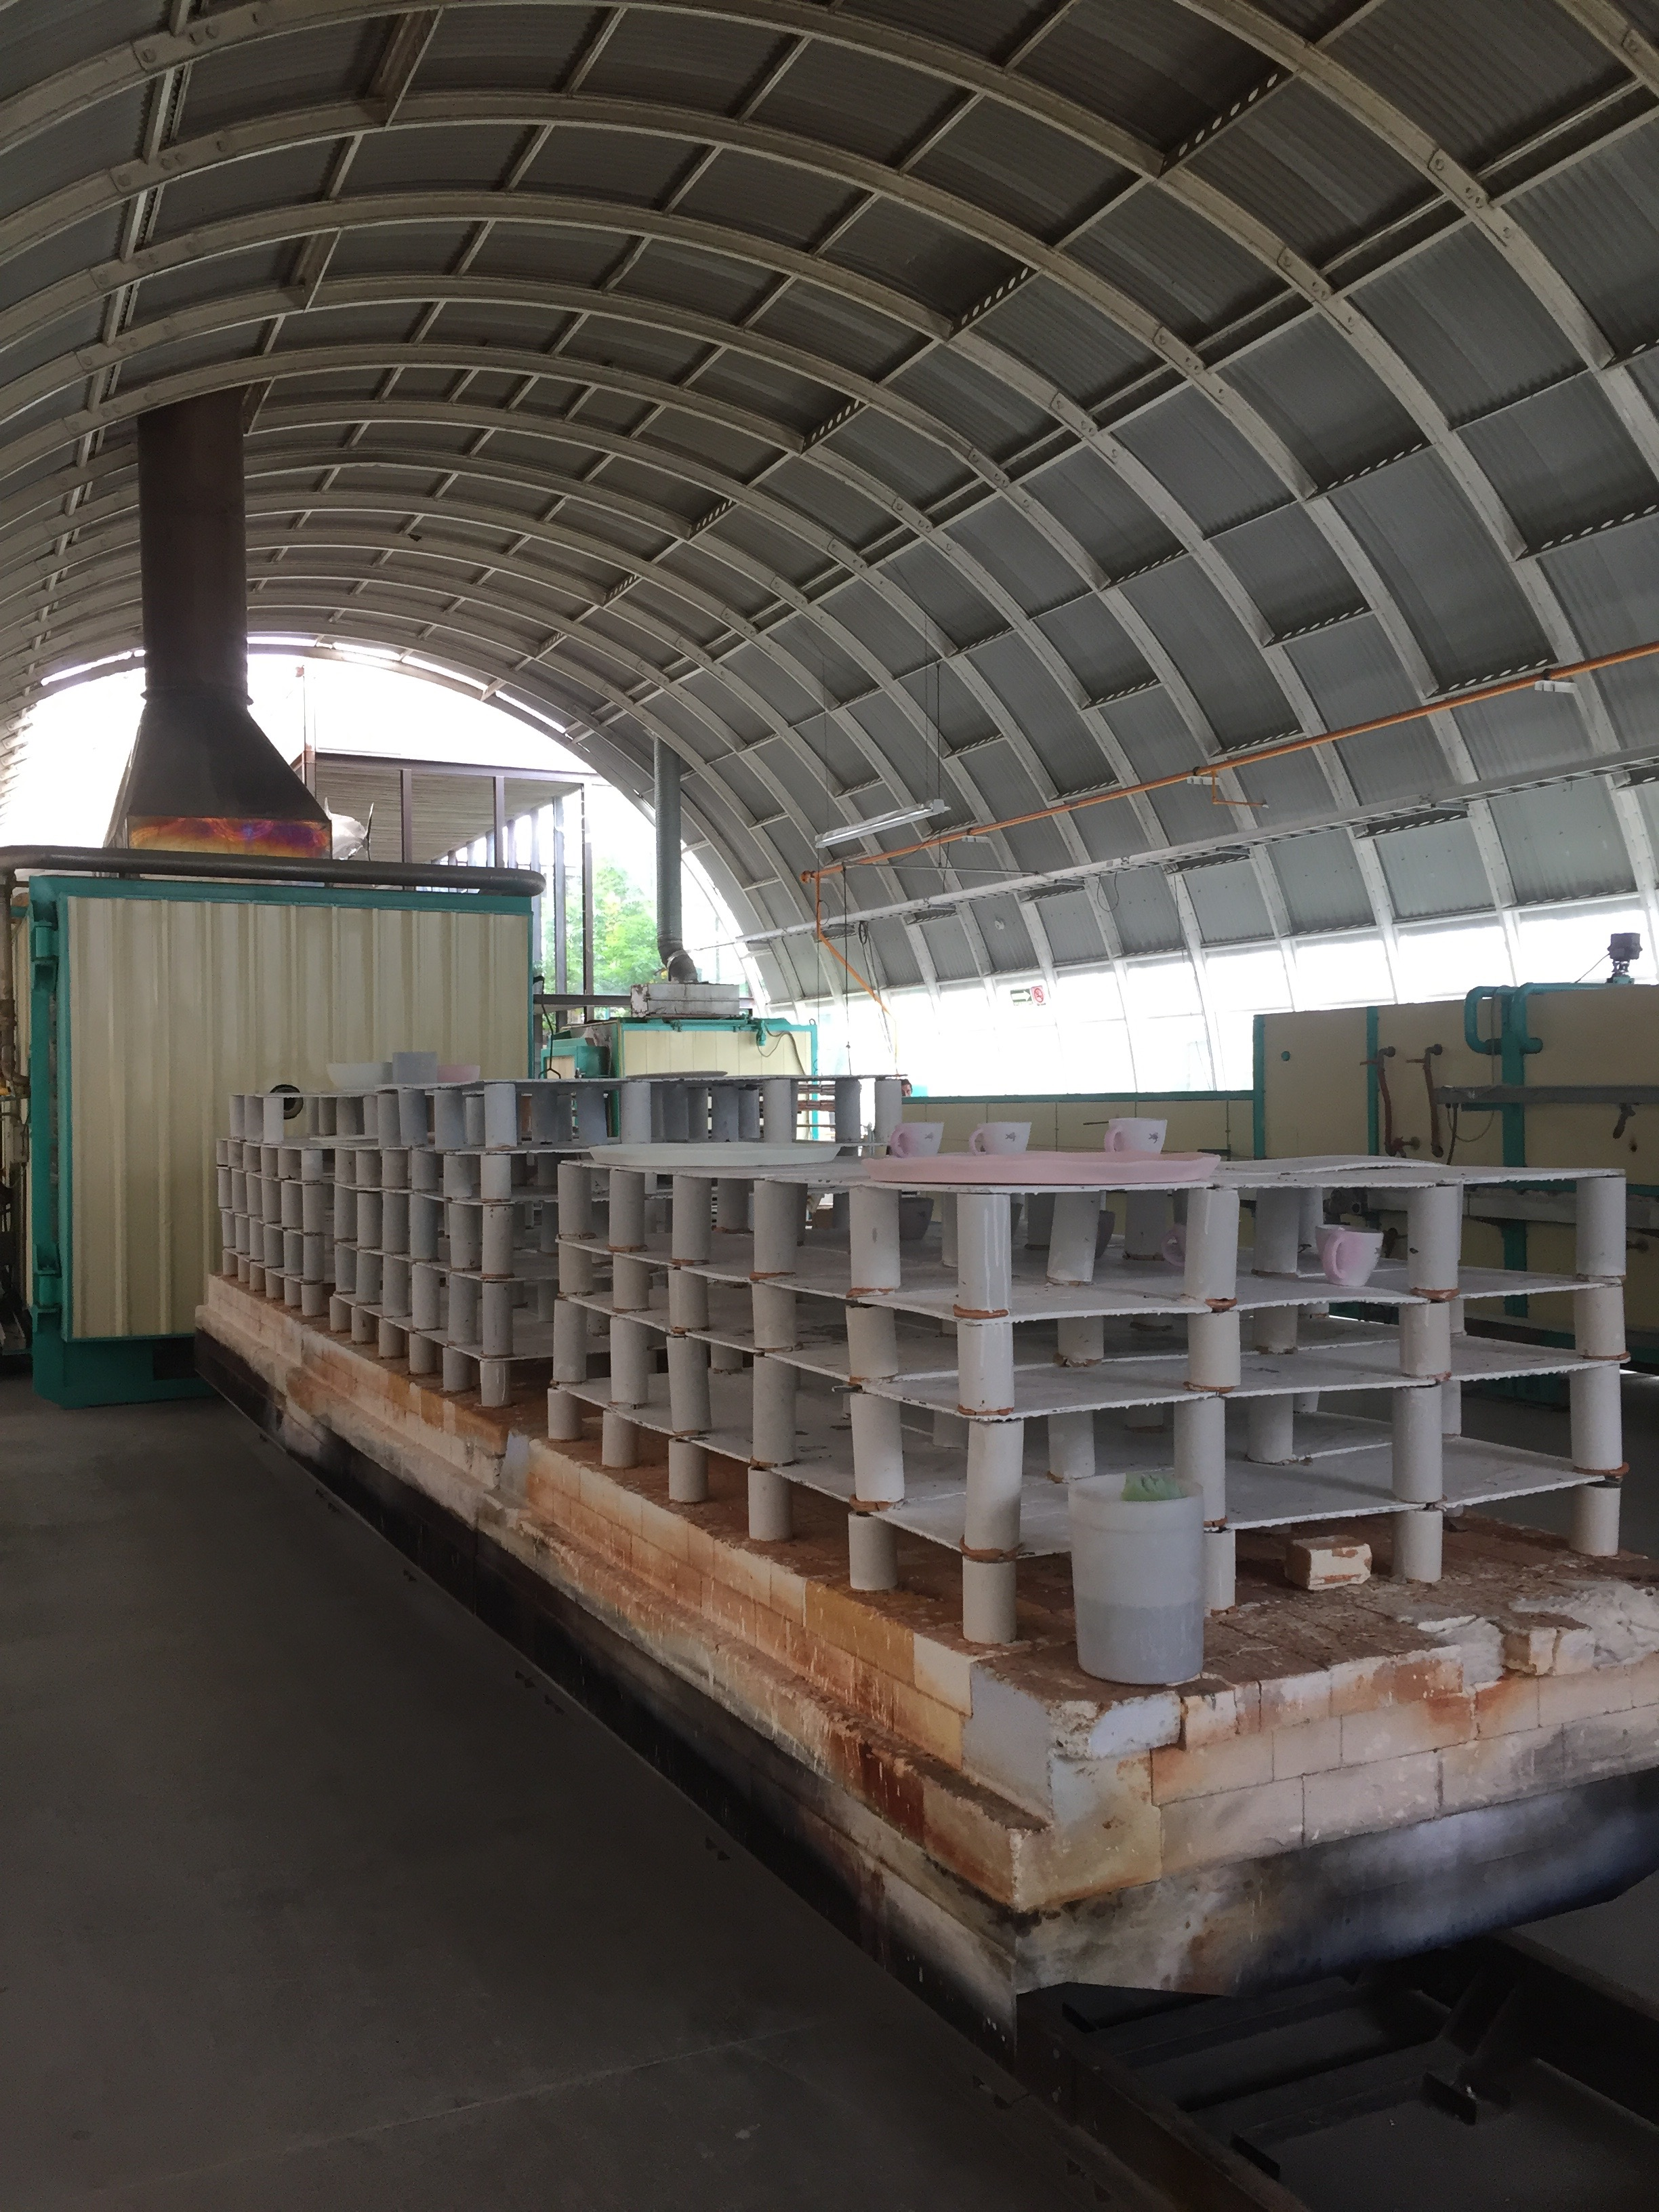 This kiln is pretty much the size of my whole studio!